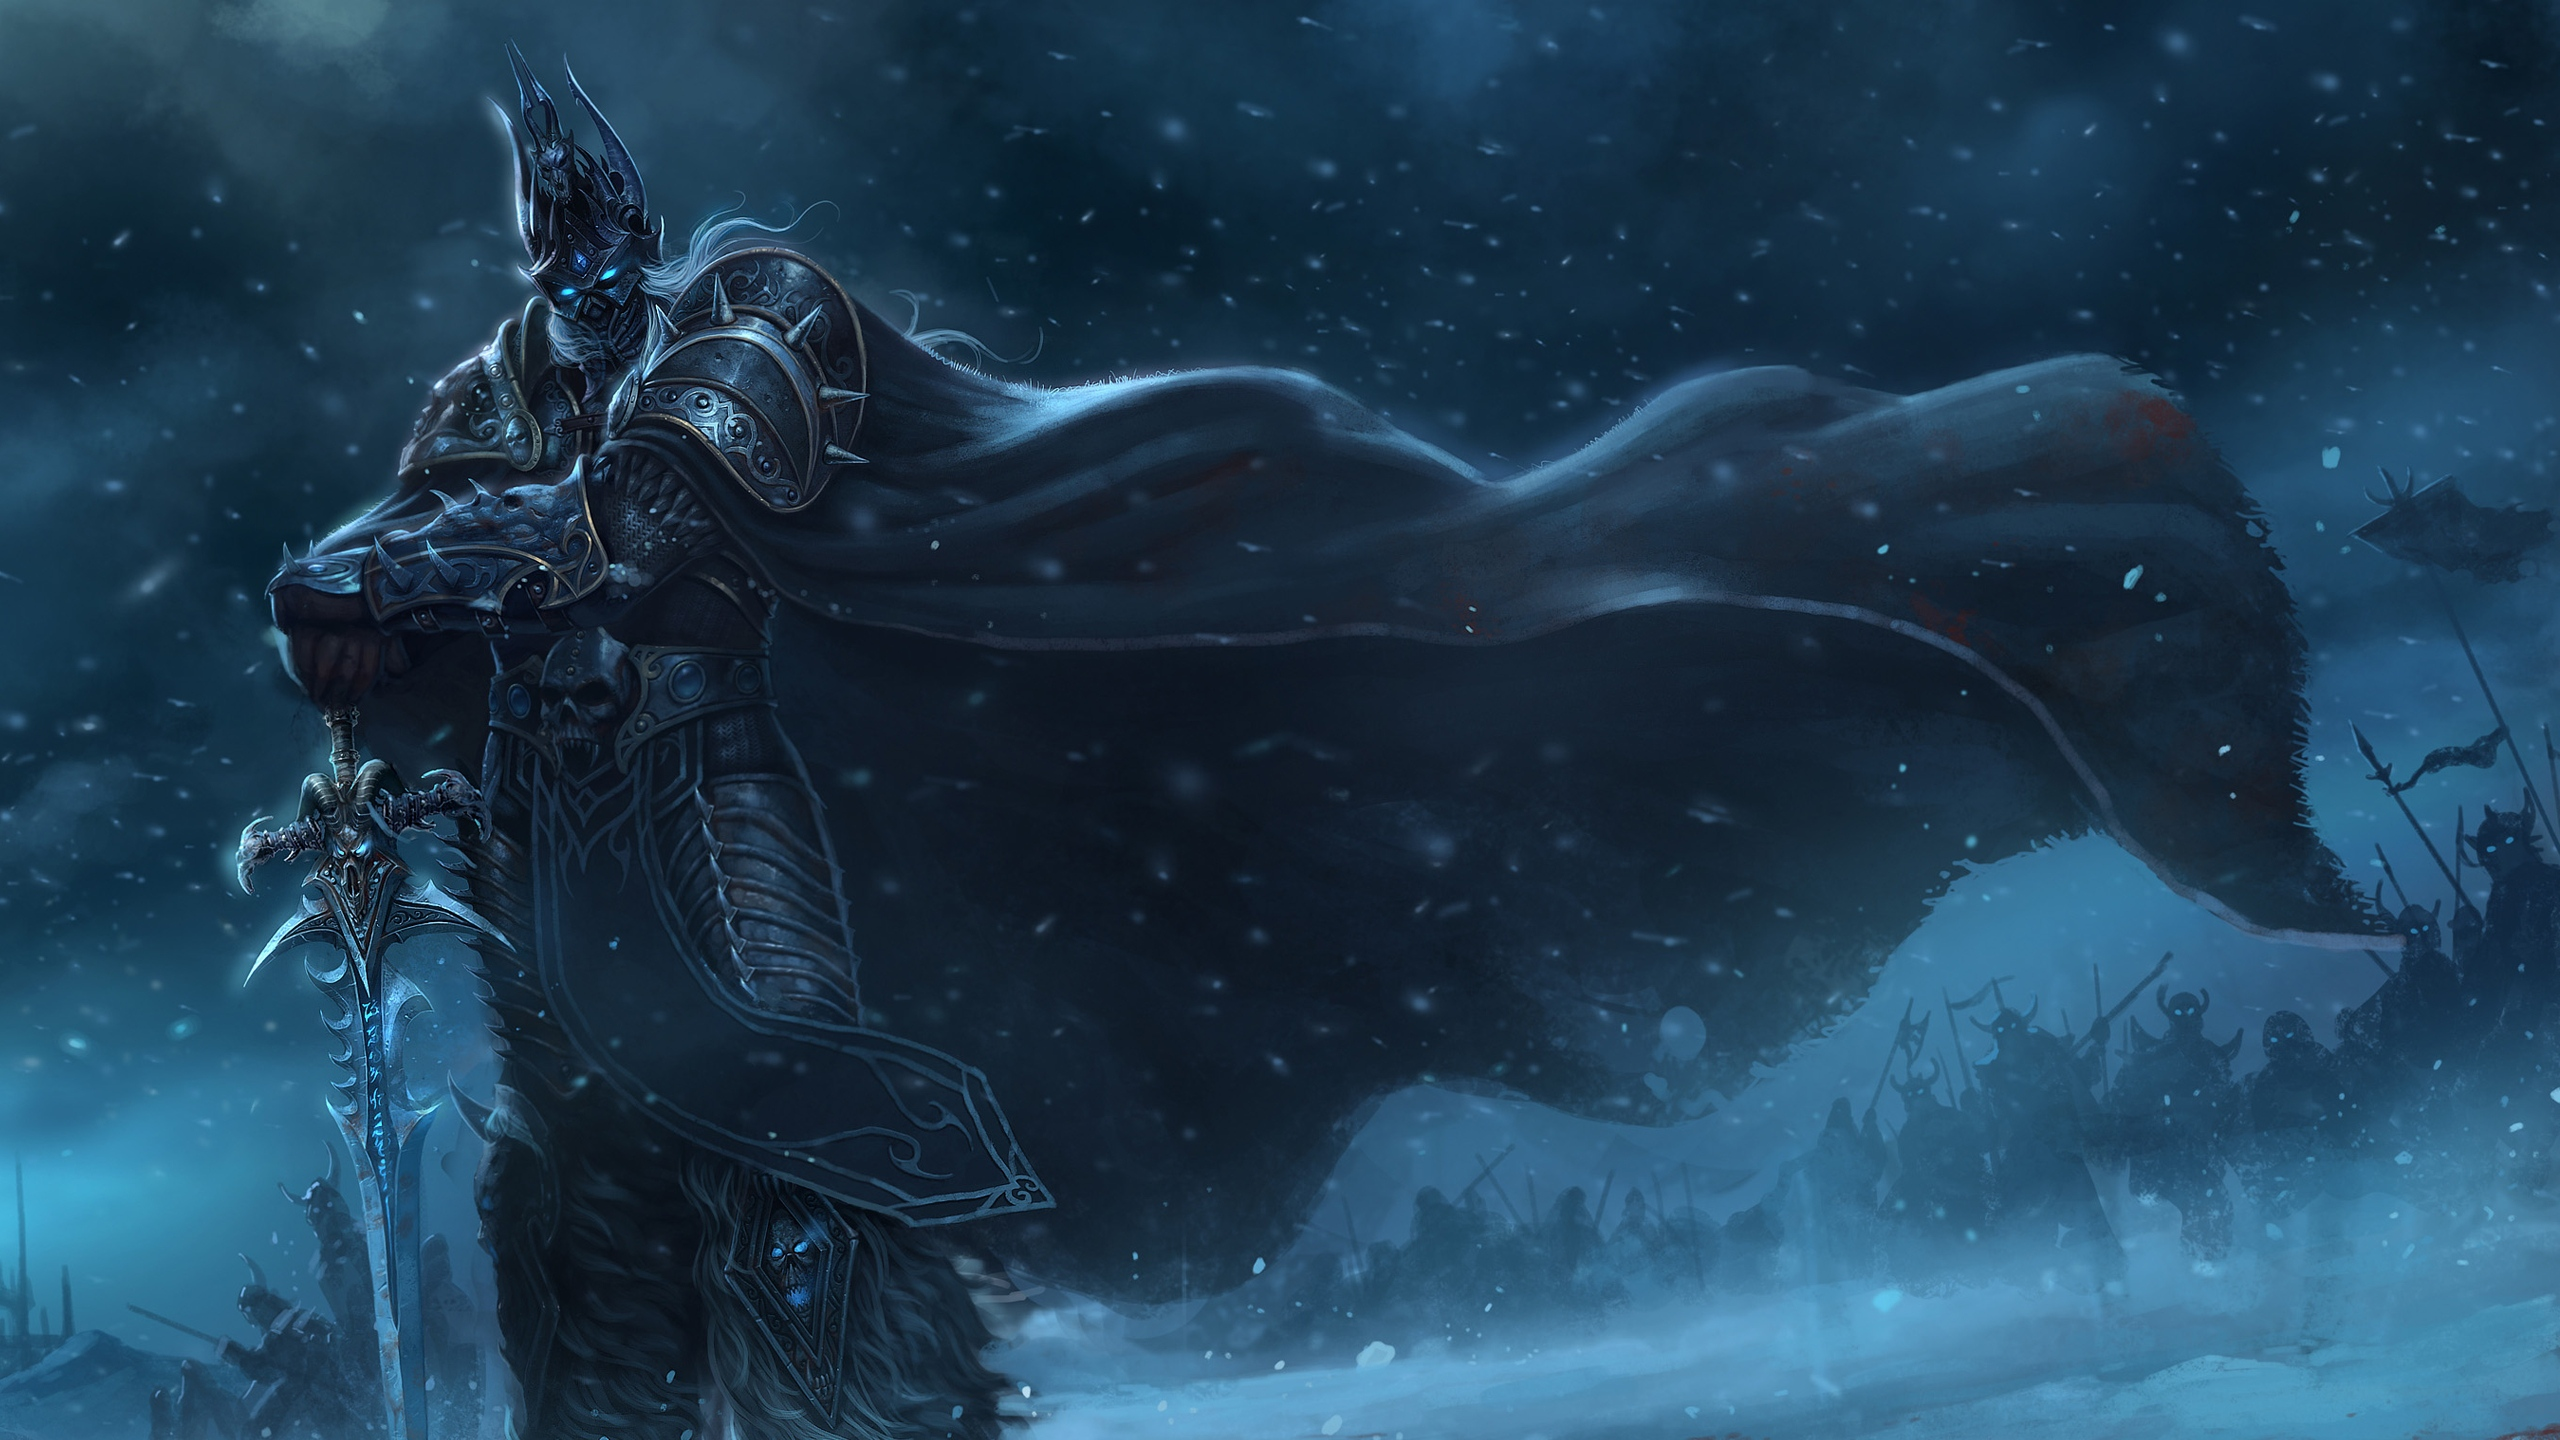 warcraft_lich_king_sword_cloak_snow_cold_16255_2560x1440